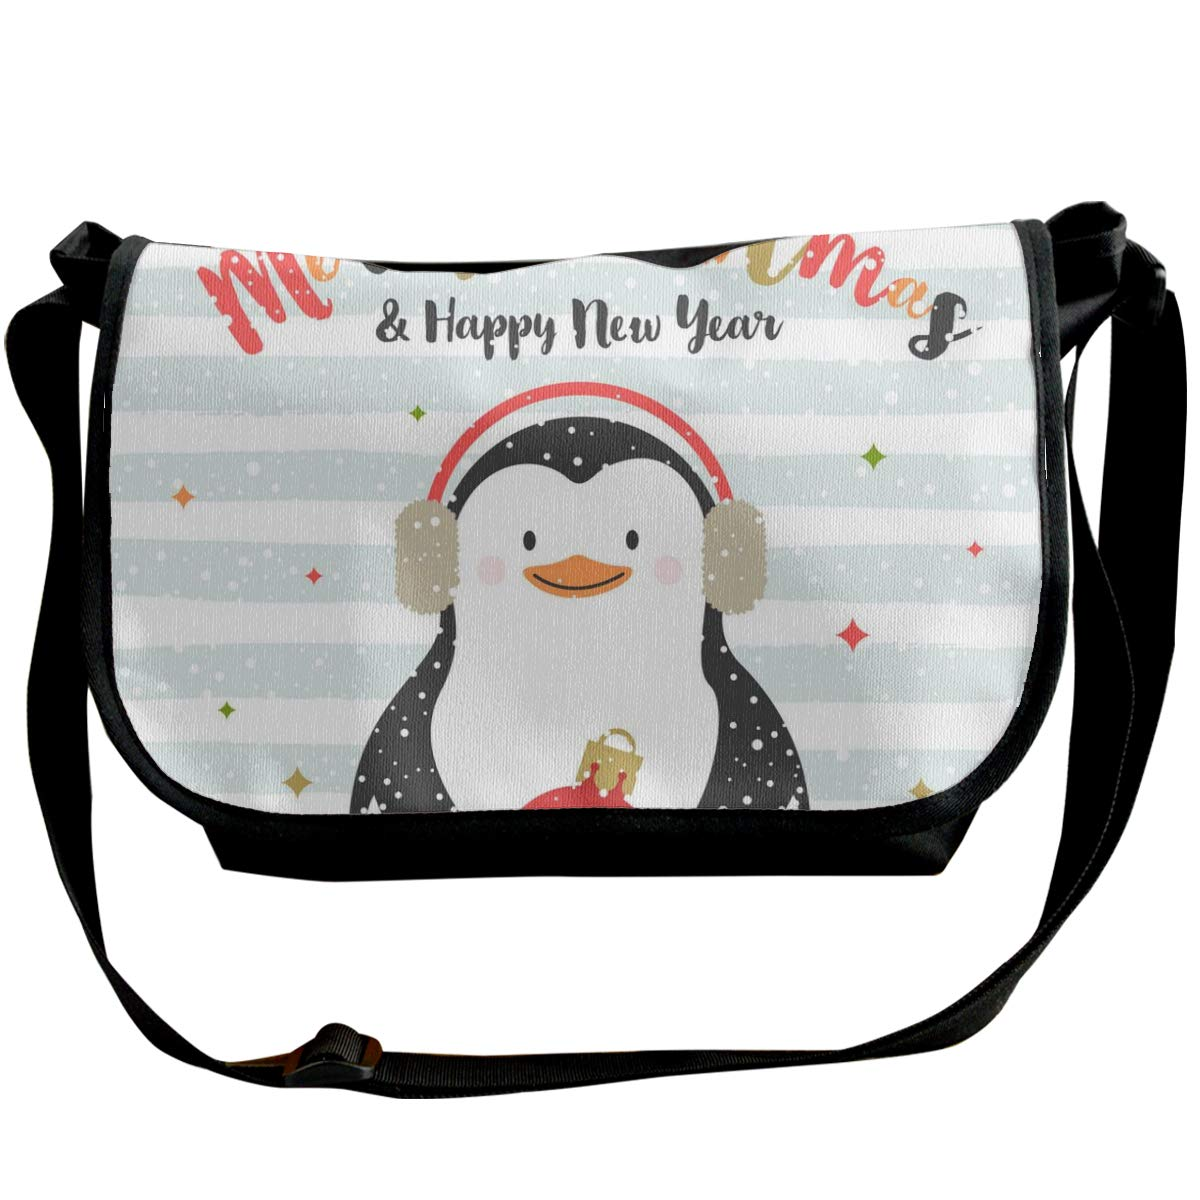 Taslilye Christmas Design With Penguin Vector Image Personalized Wide Crossbody Shoulder Bag For Men And Women For Daily Work Or Travel